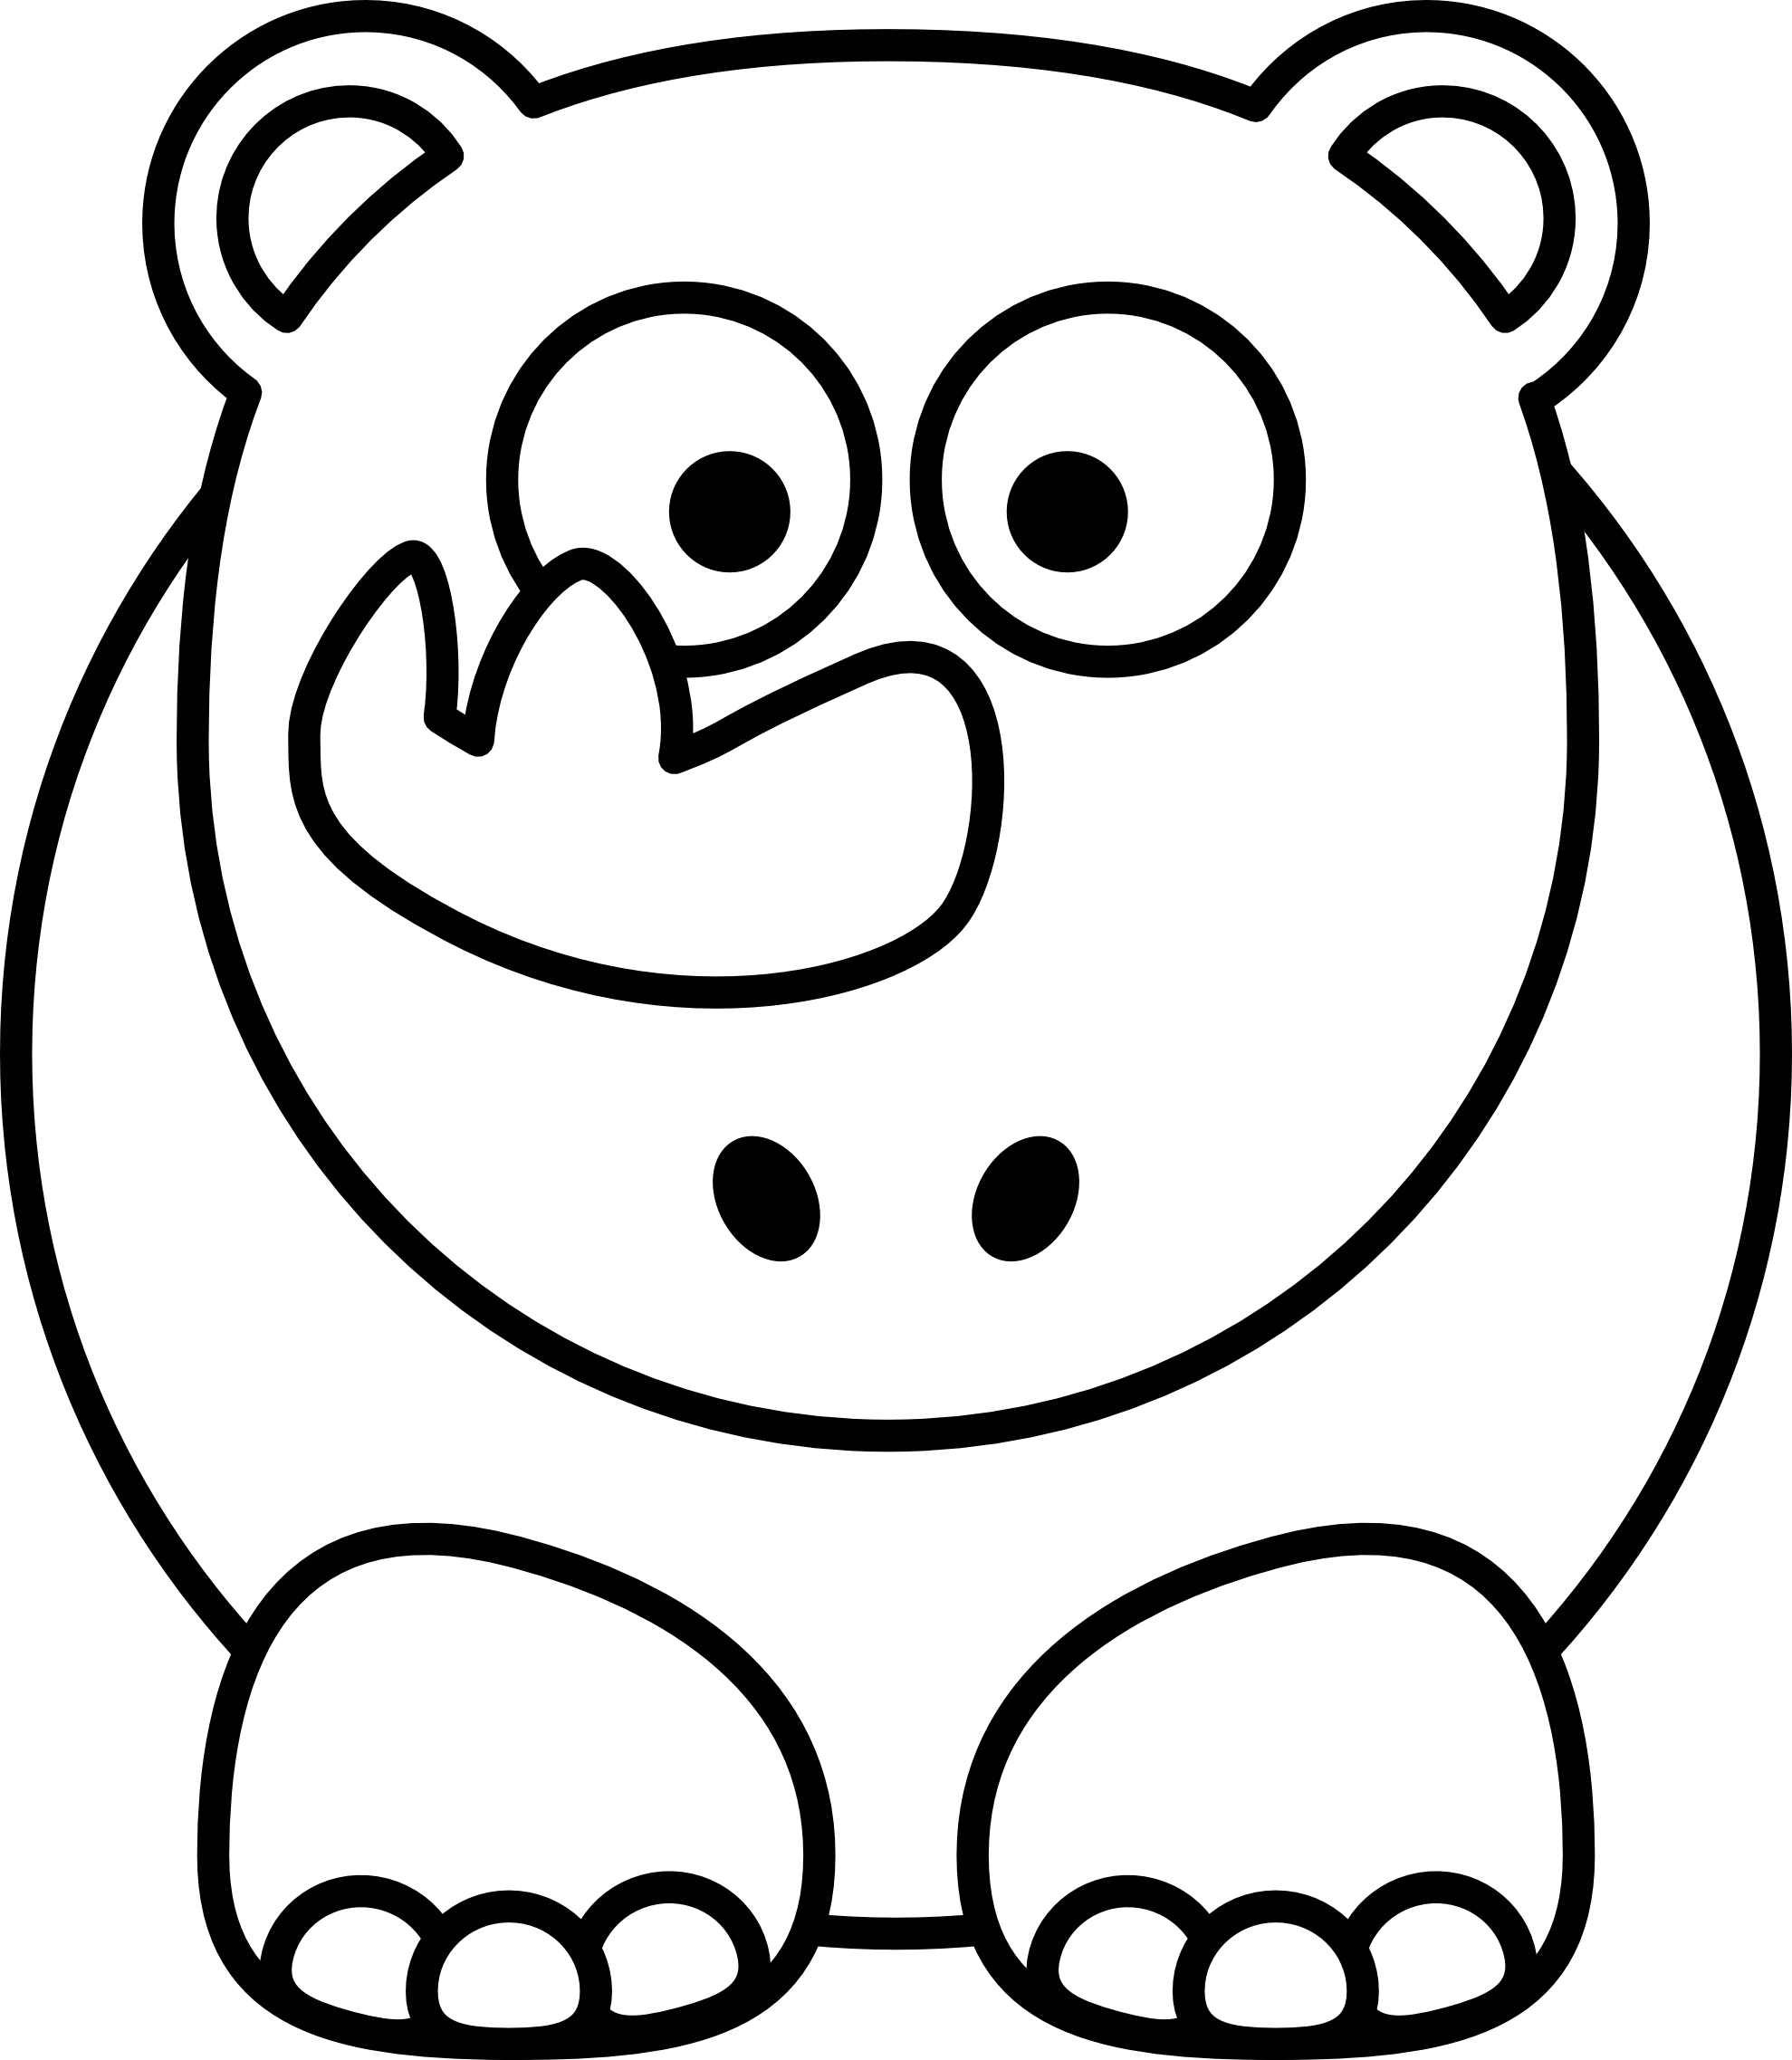 Free Black And White Cartoon Animals, Download Free Clip Art.